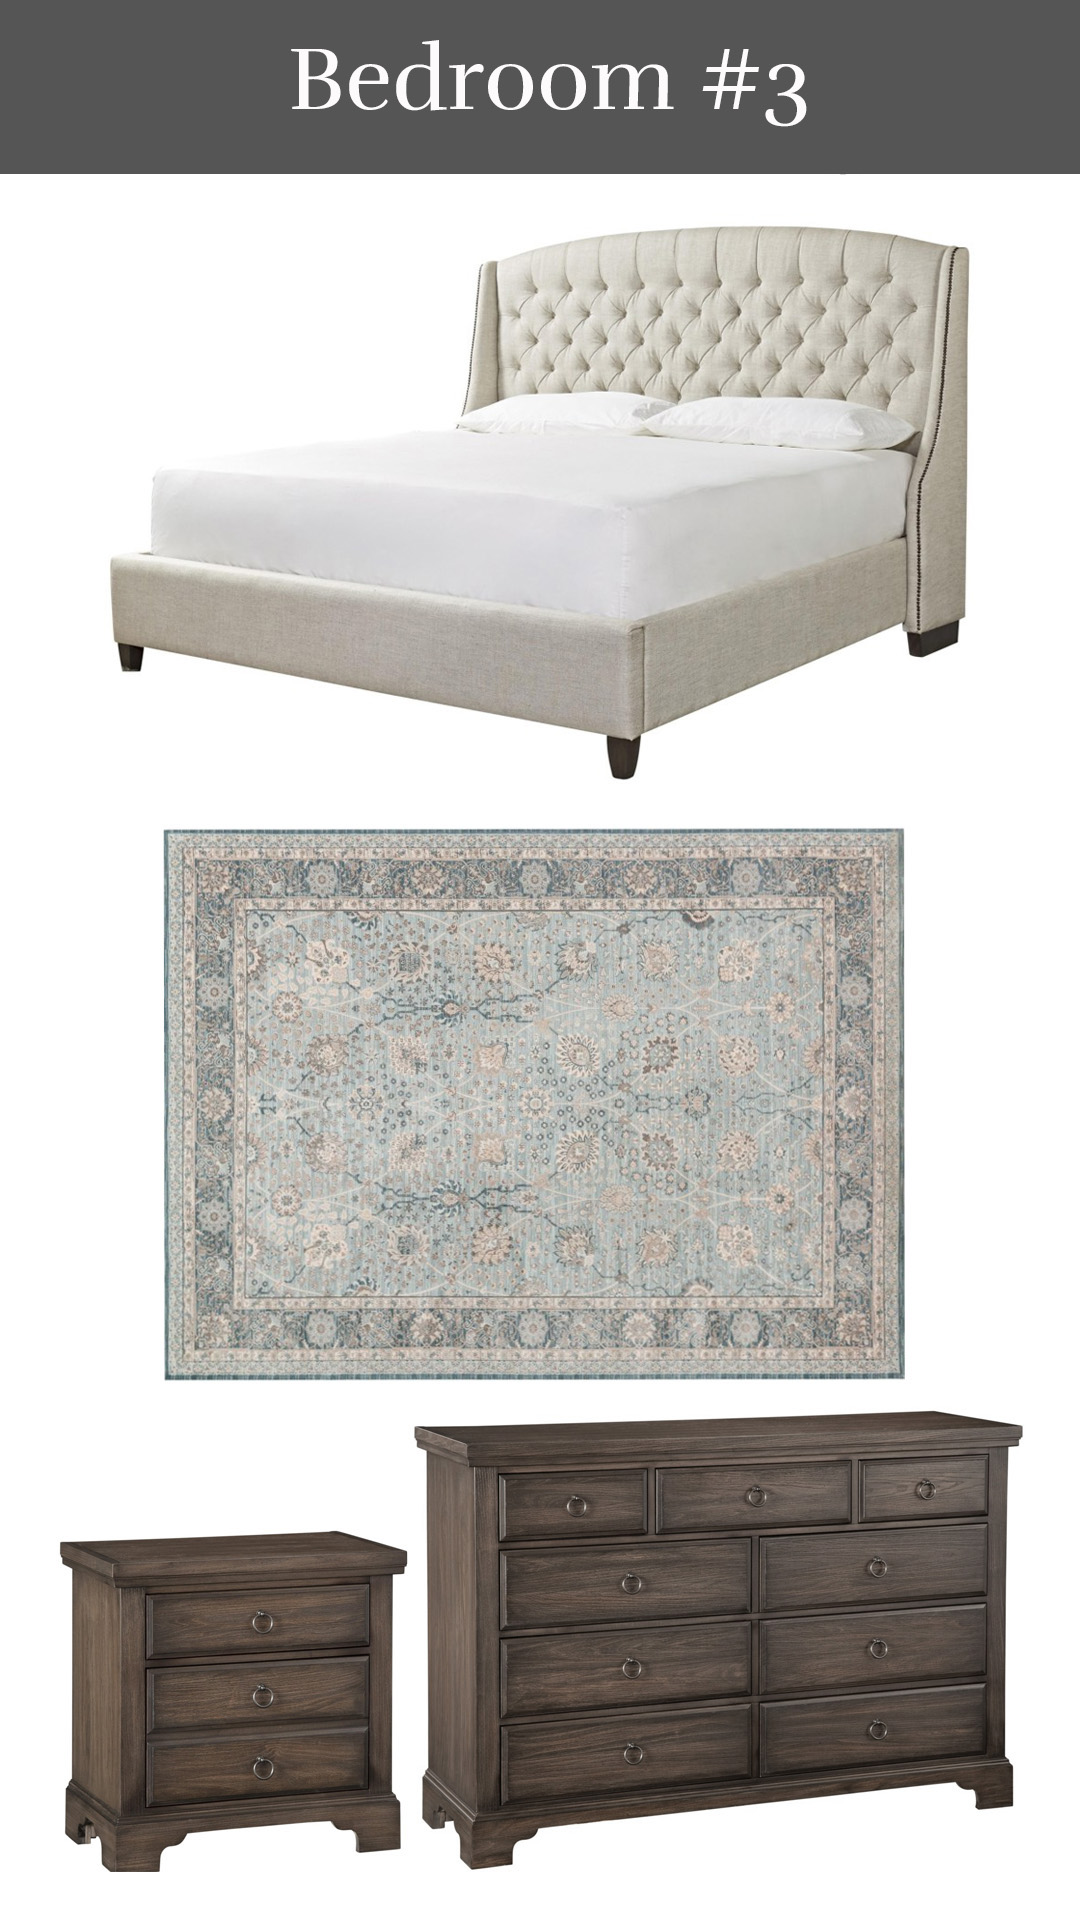 Classic Dreams - Halston Upholstered Bed + Ella Rose Rug + Whiskey Barrel Nightstand & Chesser